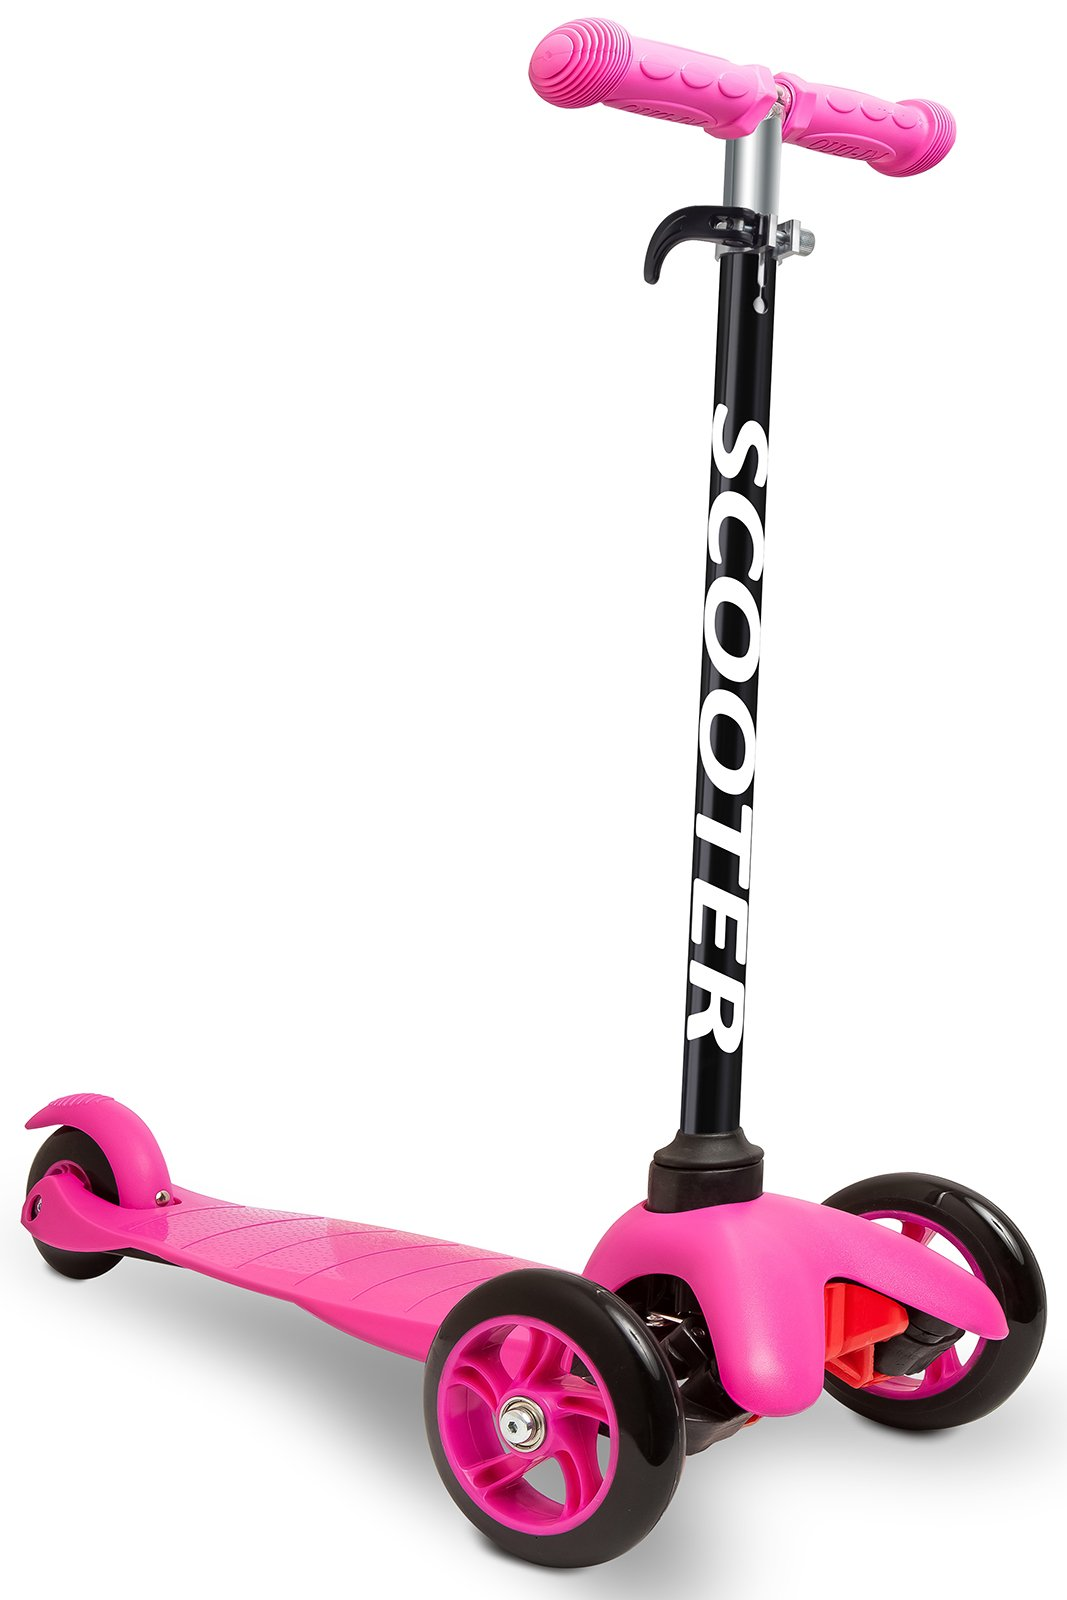 Den Haven Scooter for Kids - Deluxe Aluminum 3 Wheel Glider with Kick n Go, Lean 2 Turn, Step 4 Brake-Pink (Pink) by Den Haven (Image #1)